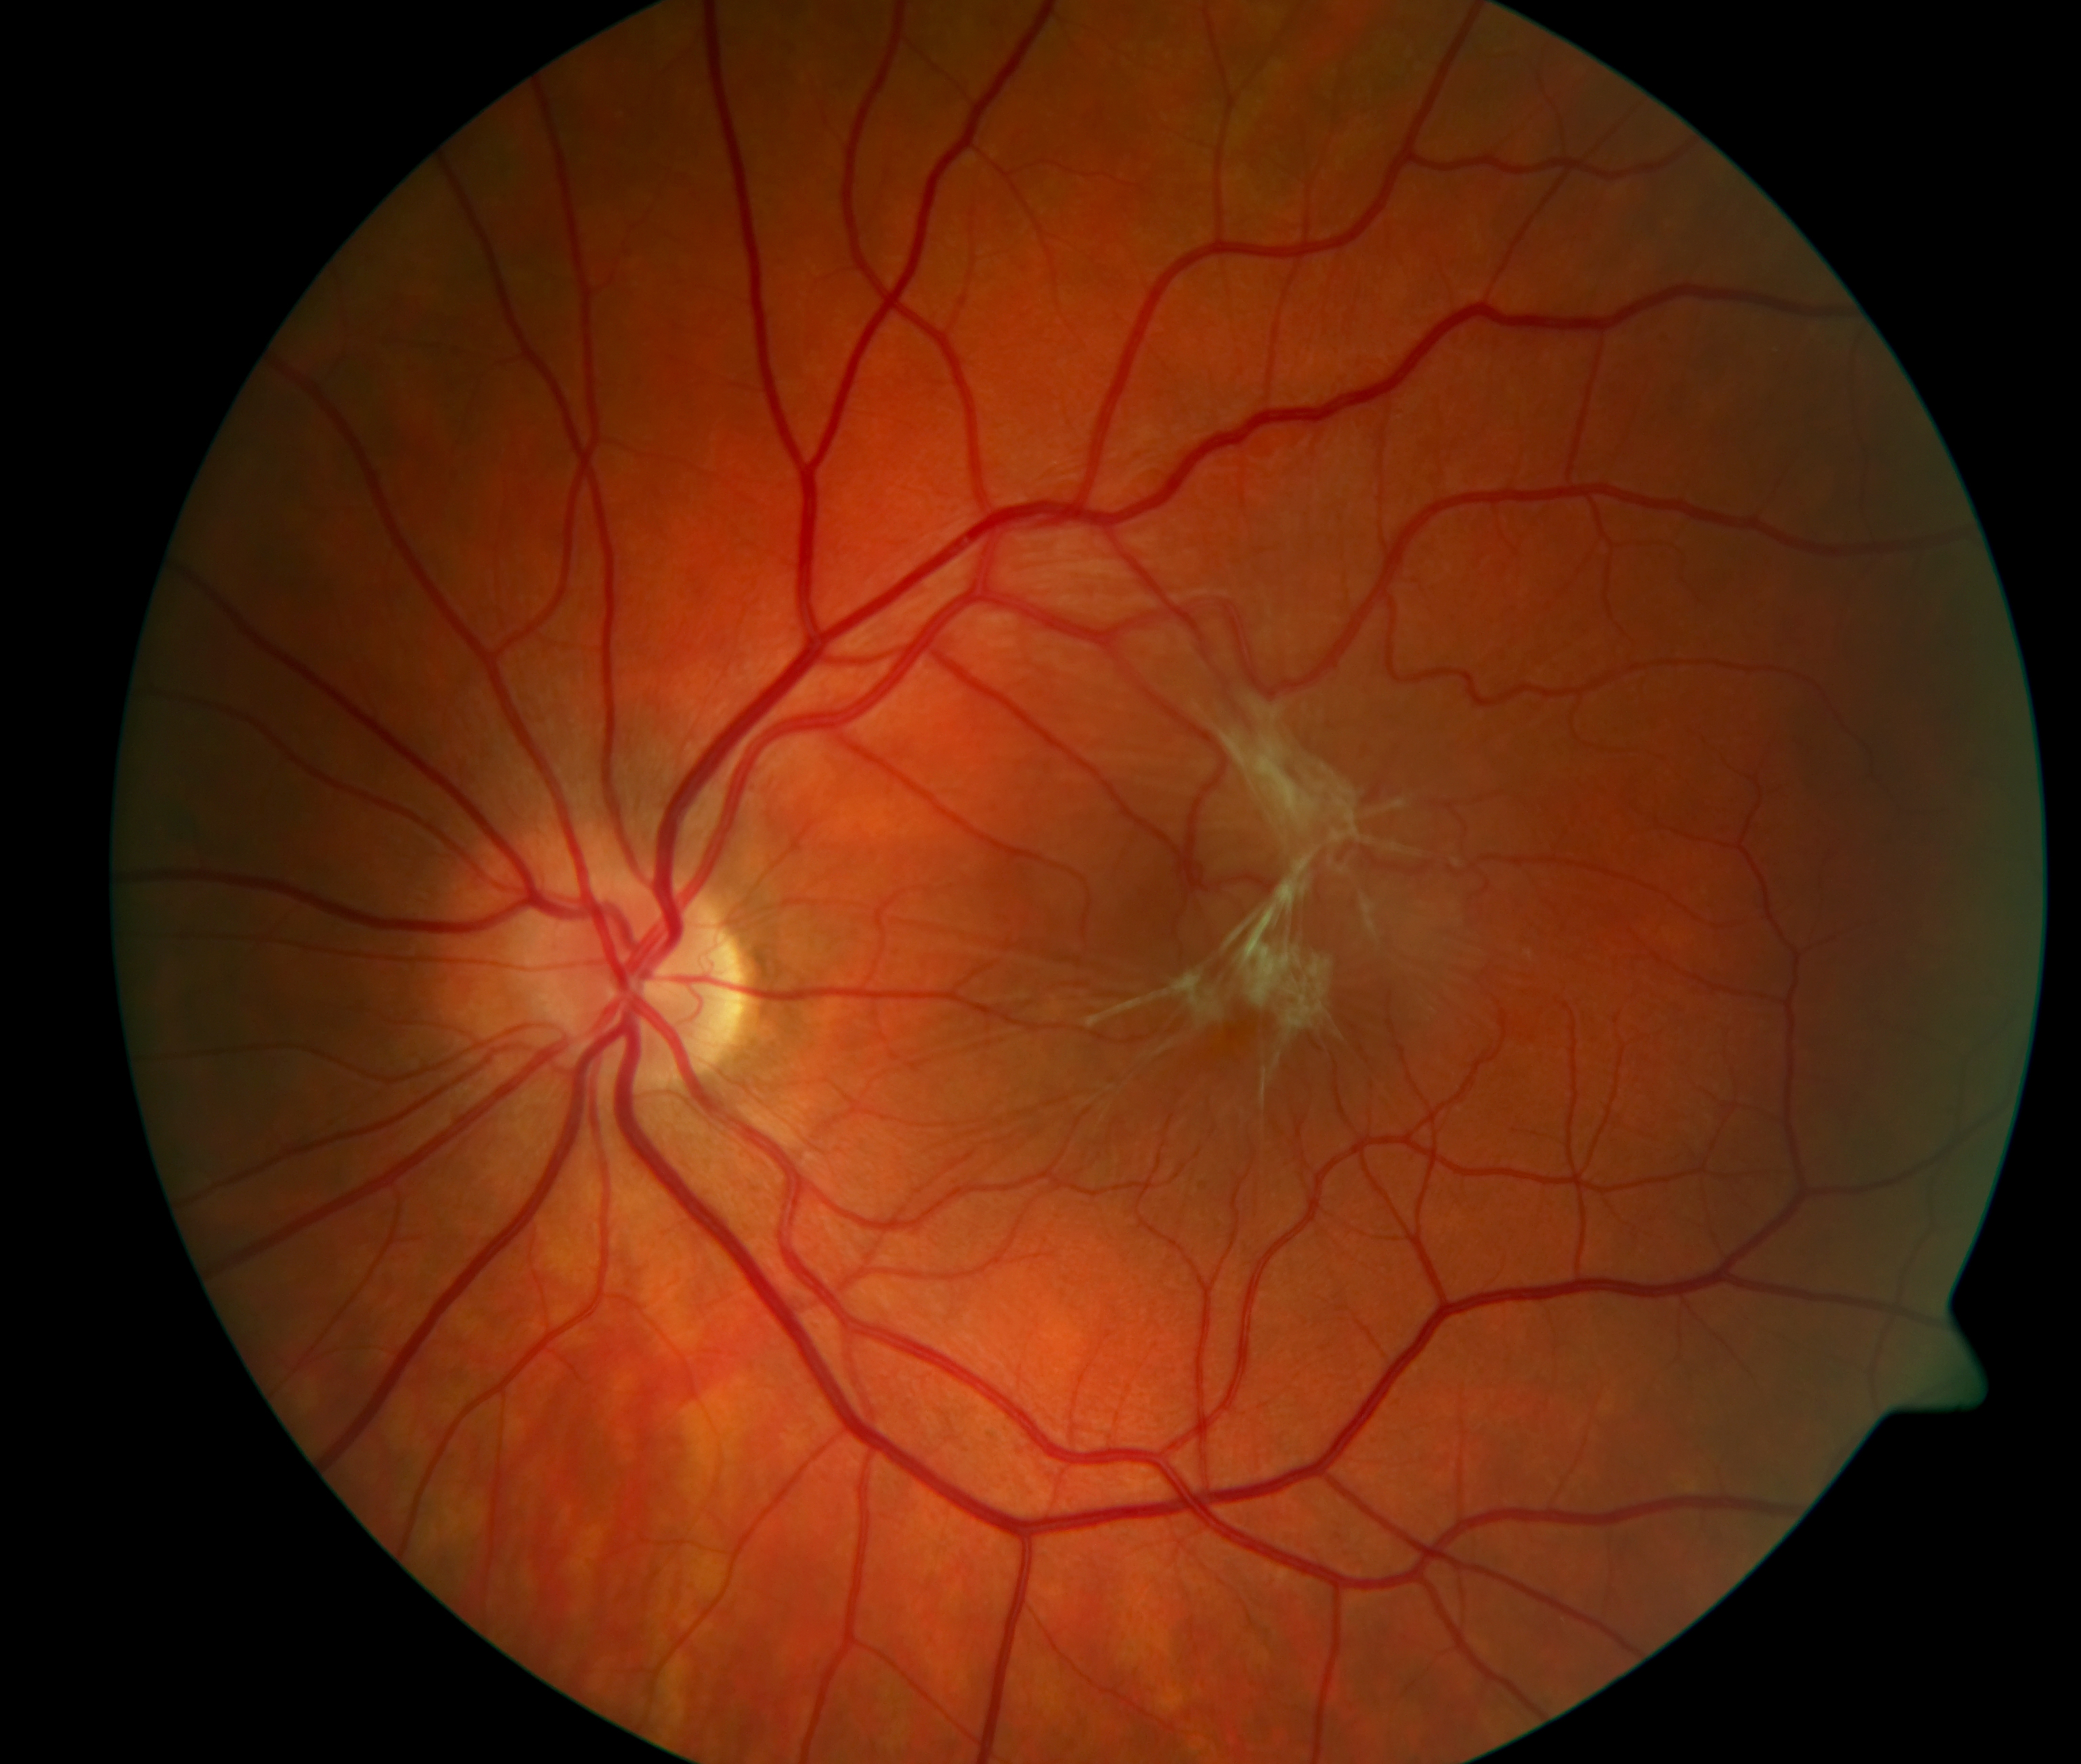 7673ade0984 ... surface of the retina and blocks the macular photoreceptors  (light-sensing cells at the center of the retina). This causes blurry and  distorted vision.